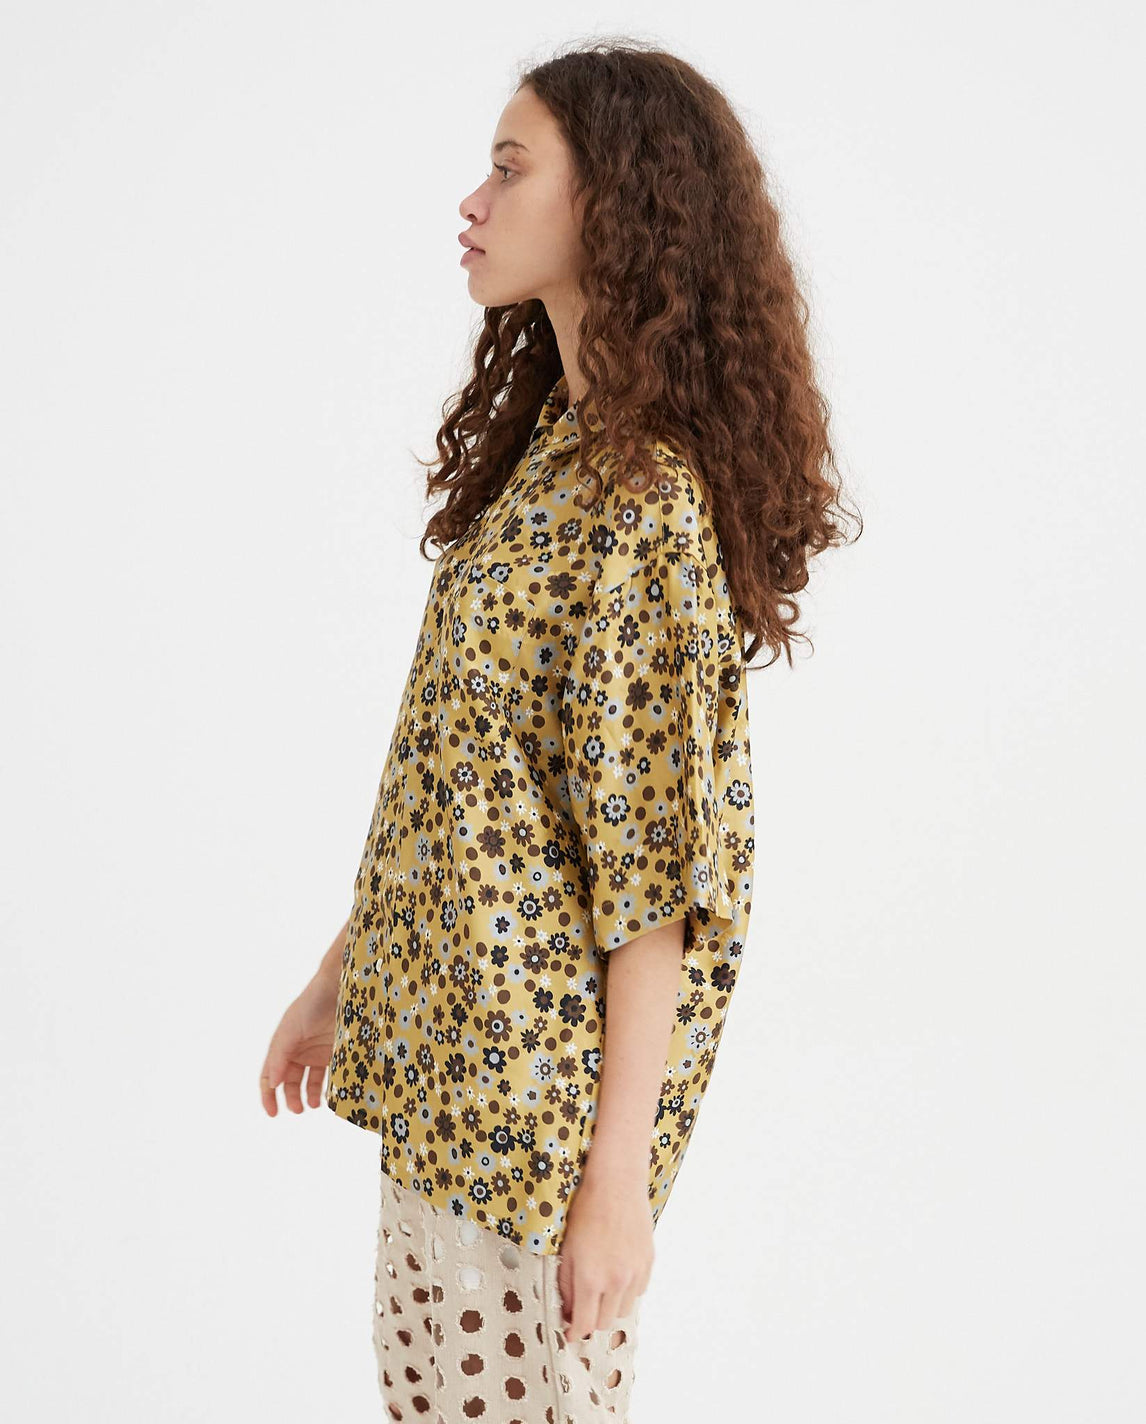 Floral Shirt - Gold UNISEX MARNI